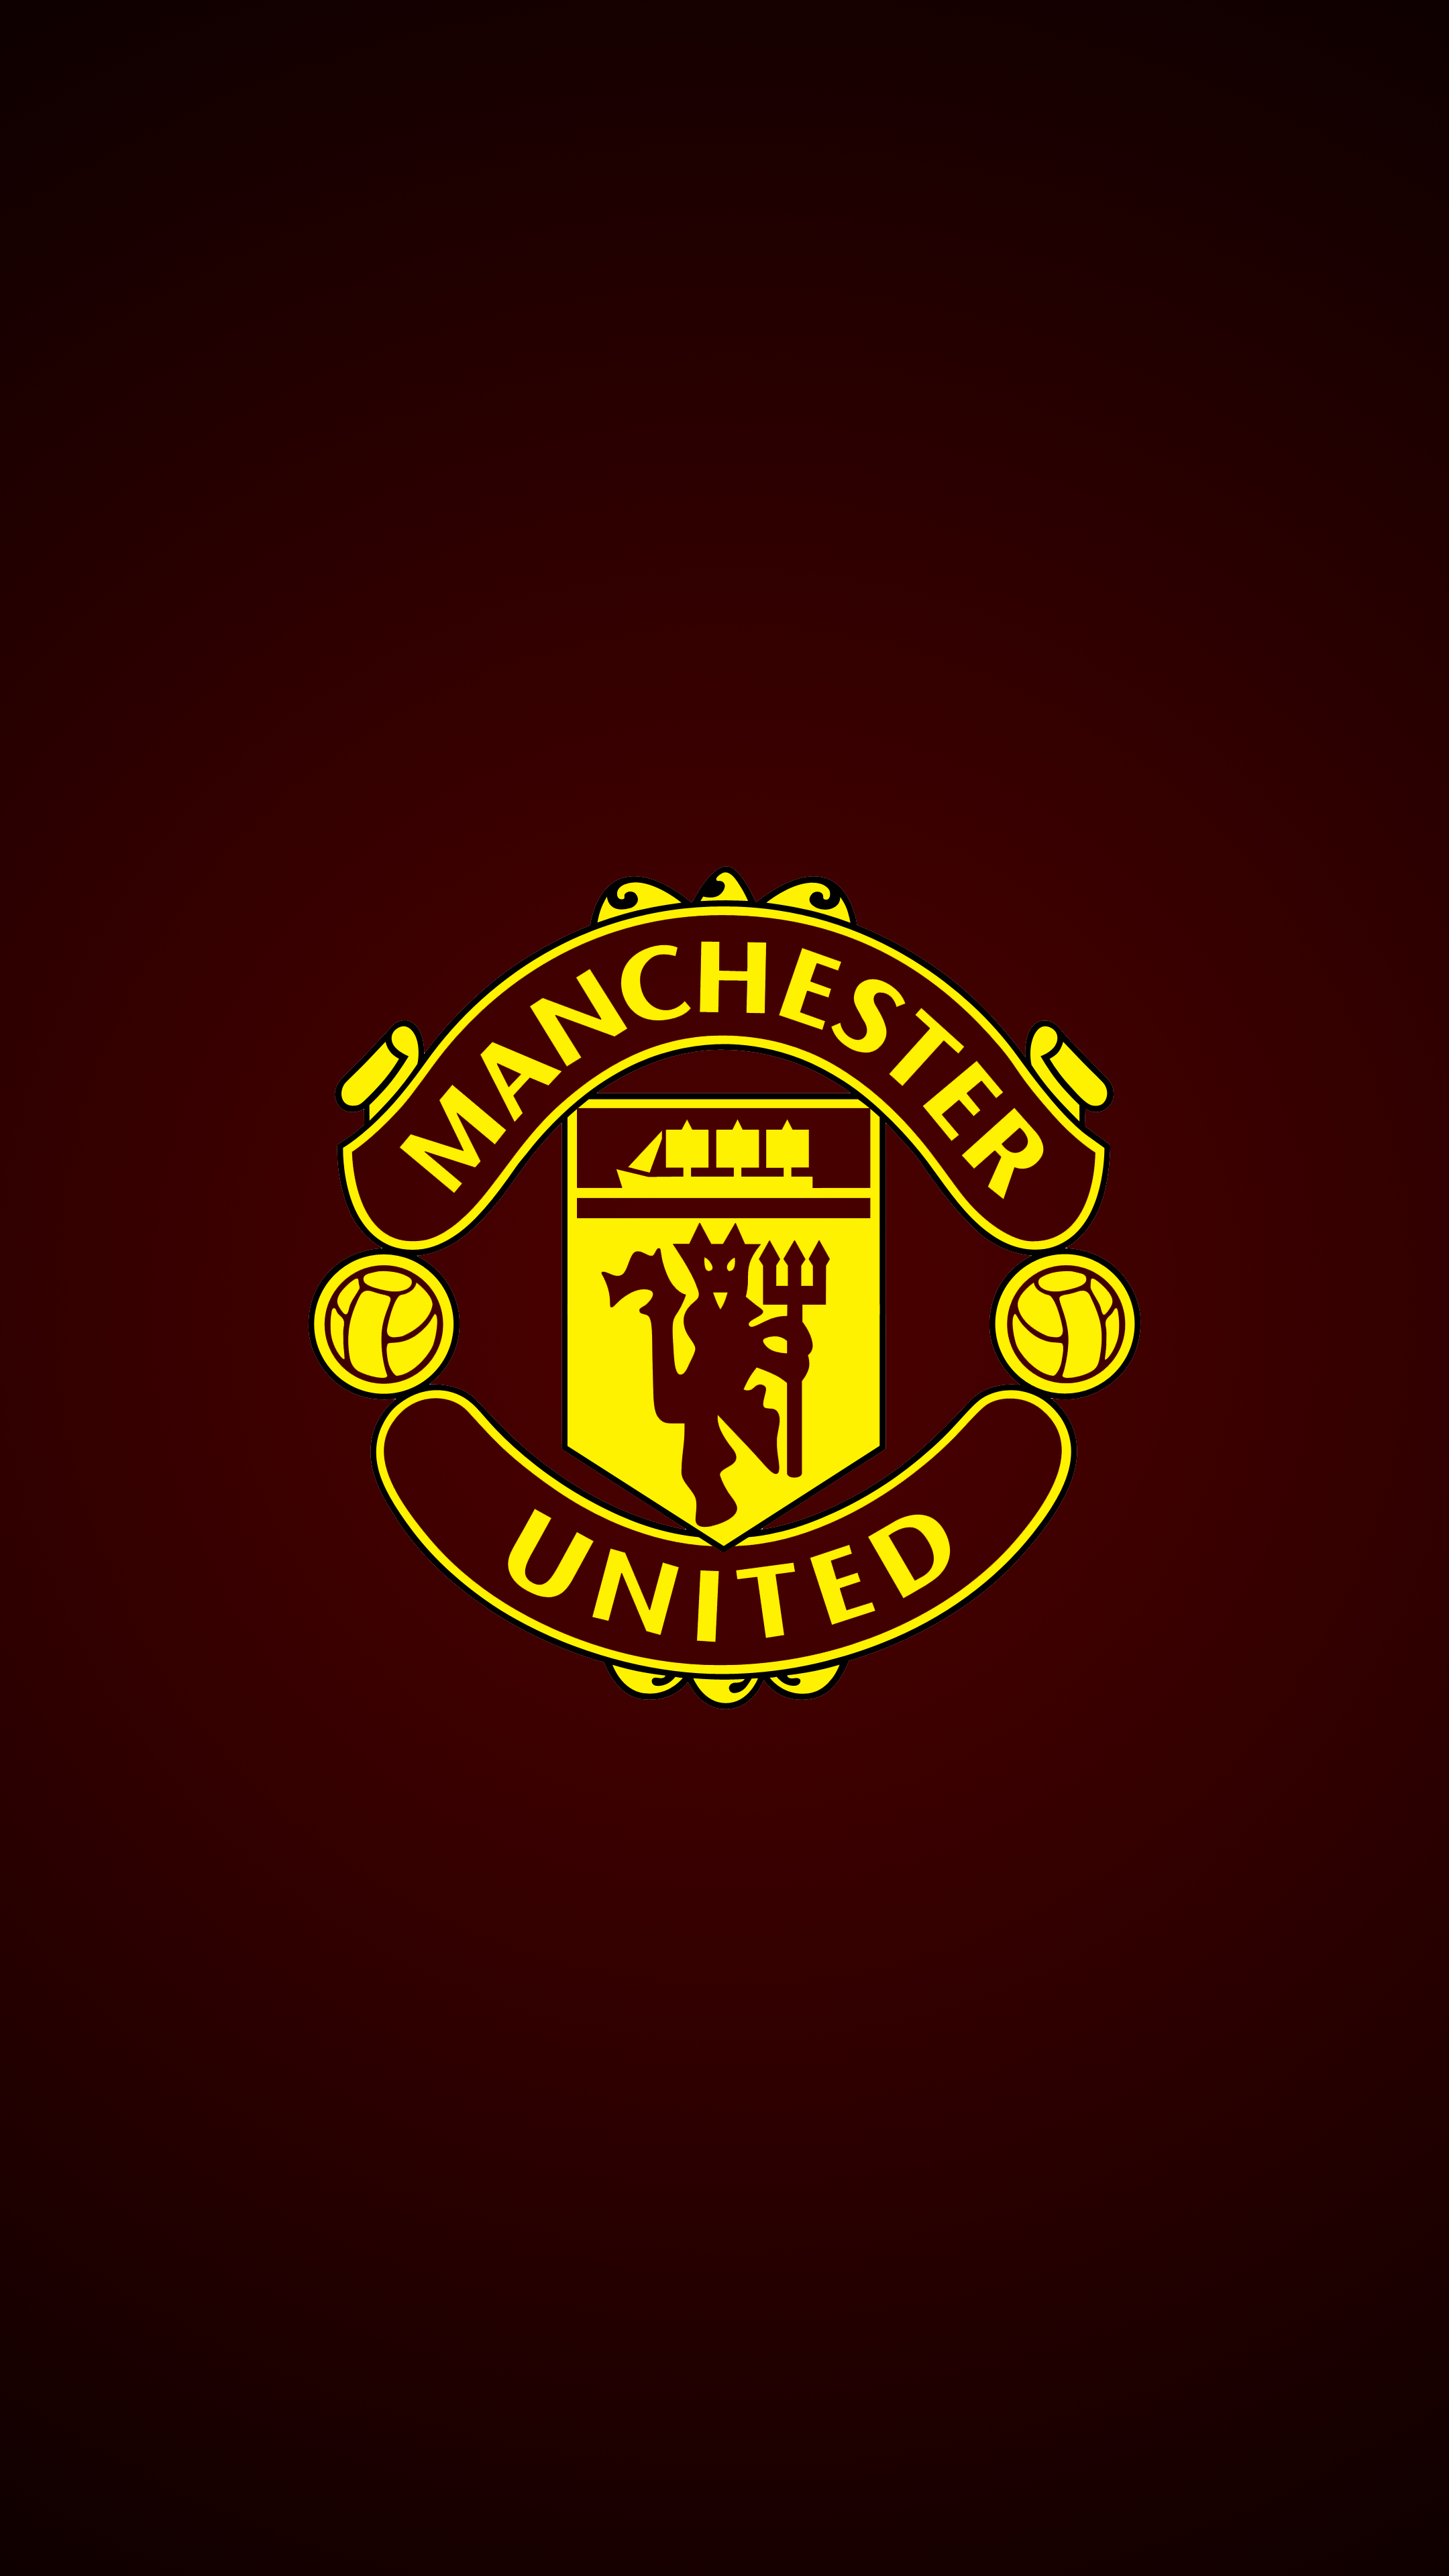 Manchester United 4k Magnificent Wallpaper Bong đa Manchester United Manchester